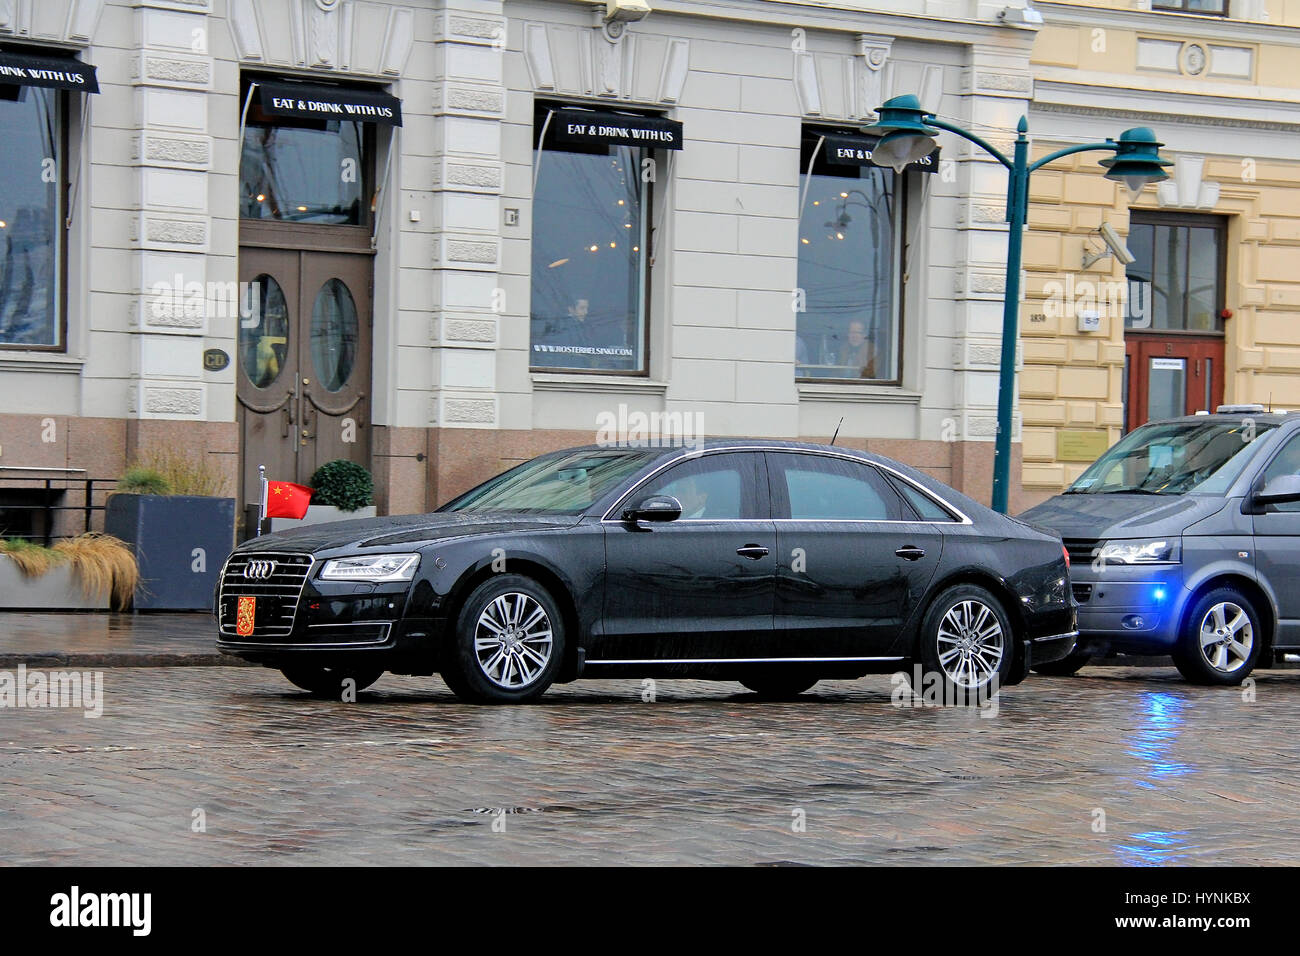 HELSINKI, FINLAND - APRIL 5, 2017: The President of China Xi Jinping and his delegation on the move with Audi A8 - Stock Image